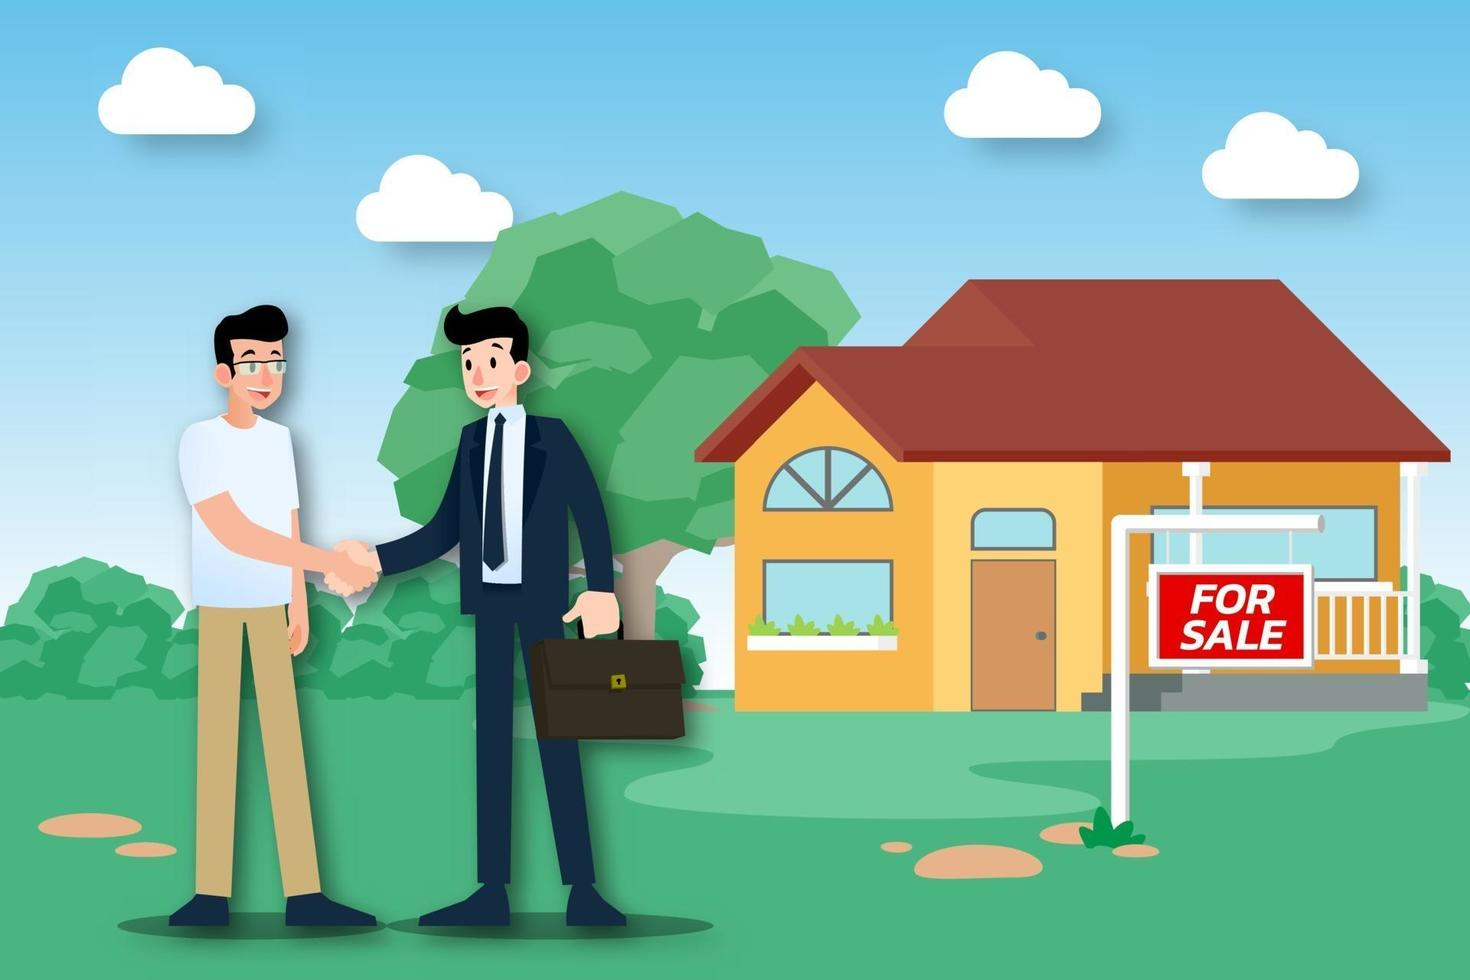 The realtor shows the new beautiful modern house for sale to client and make a successful deal. Vector illustration in flat design.